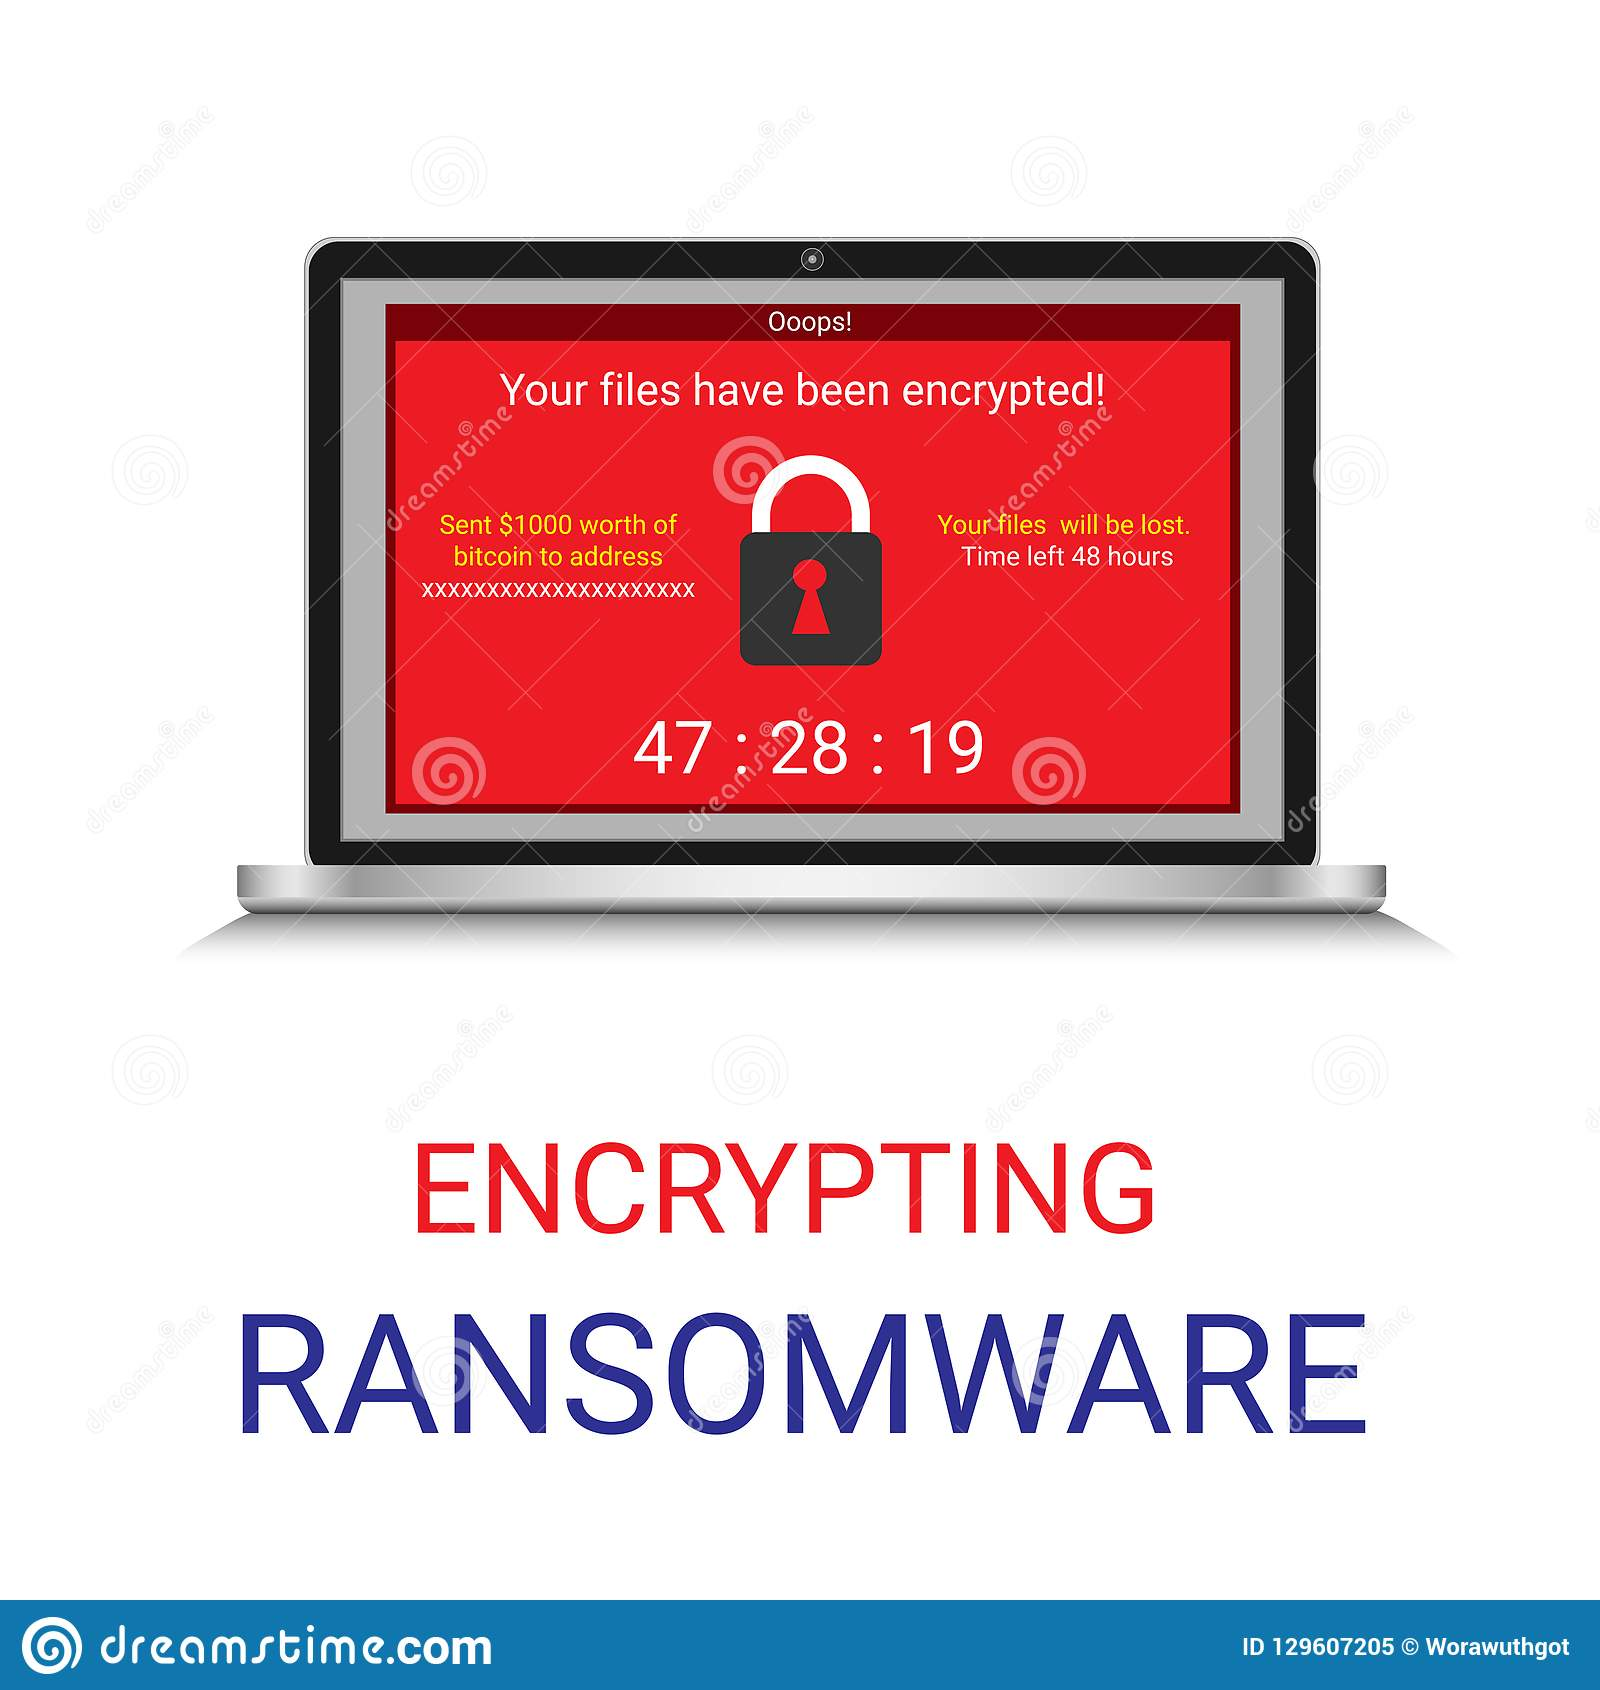 Malware encrypted file in computer, Ransomware.